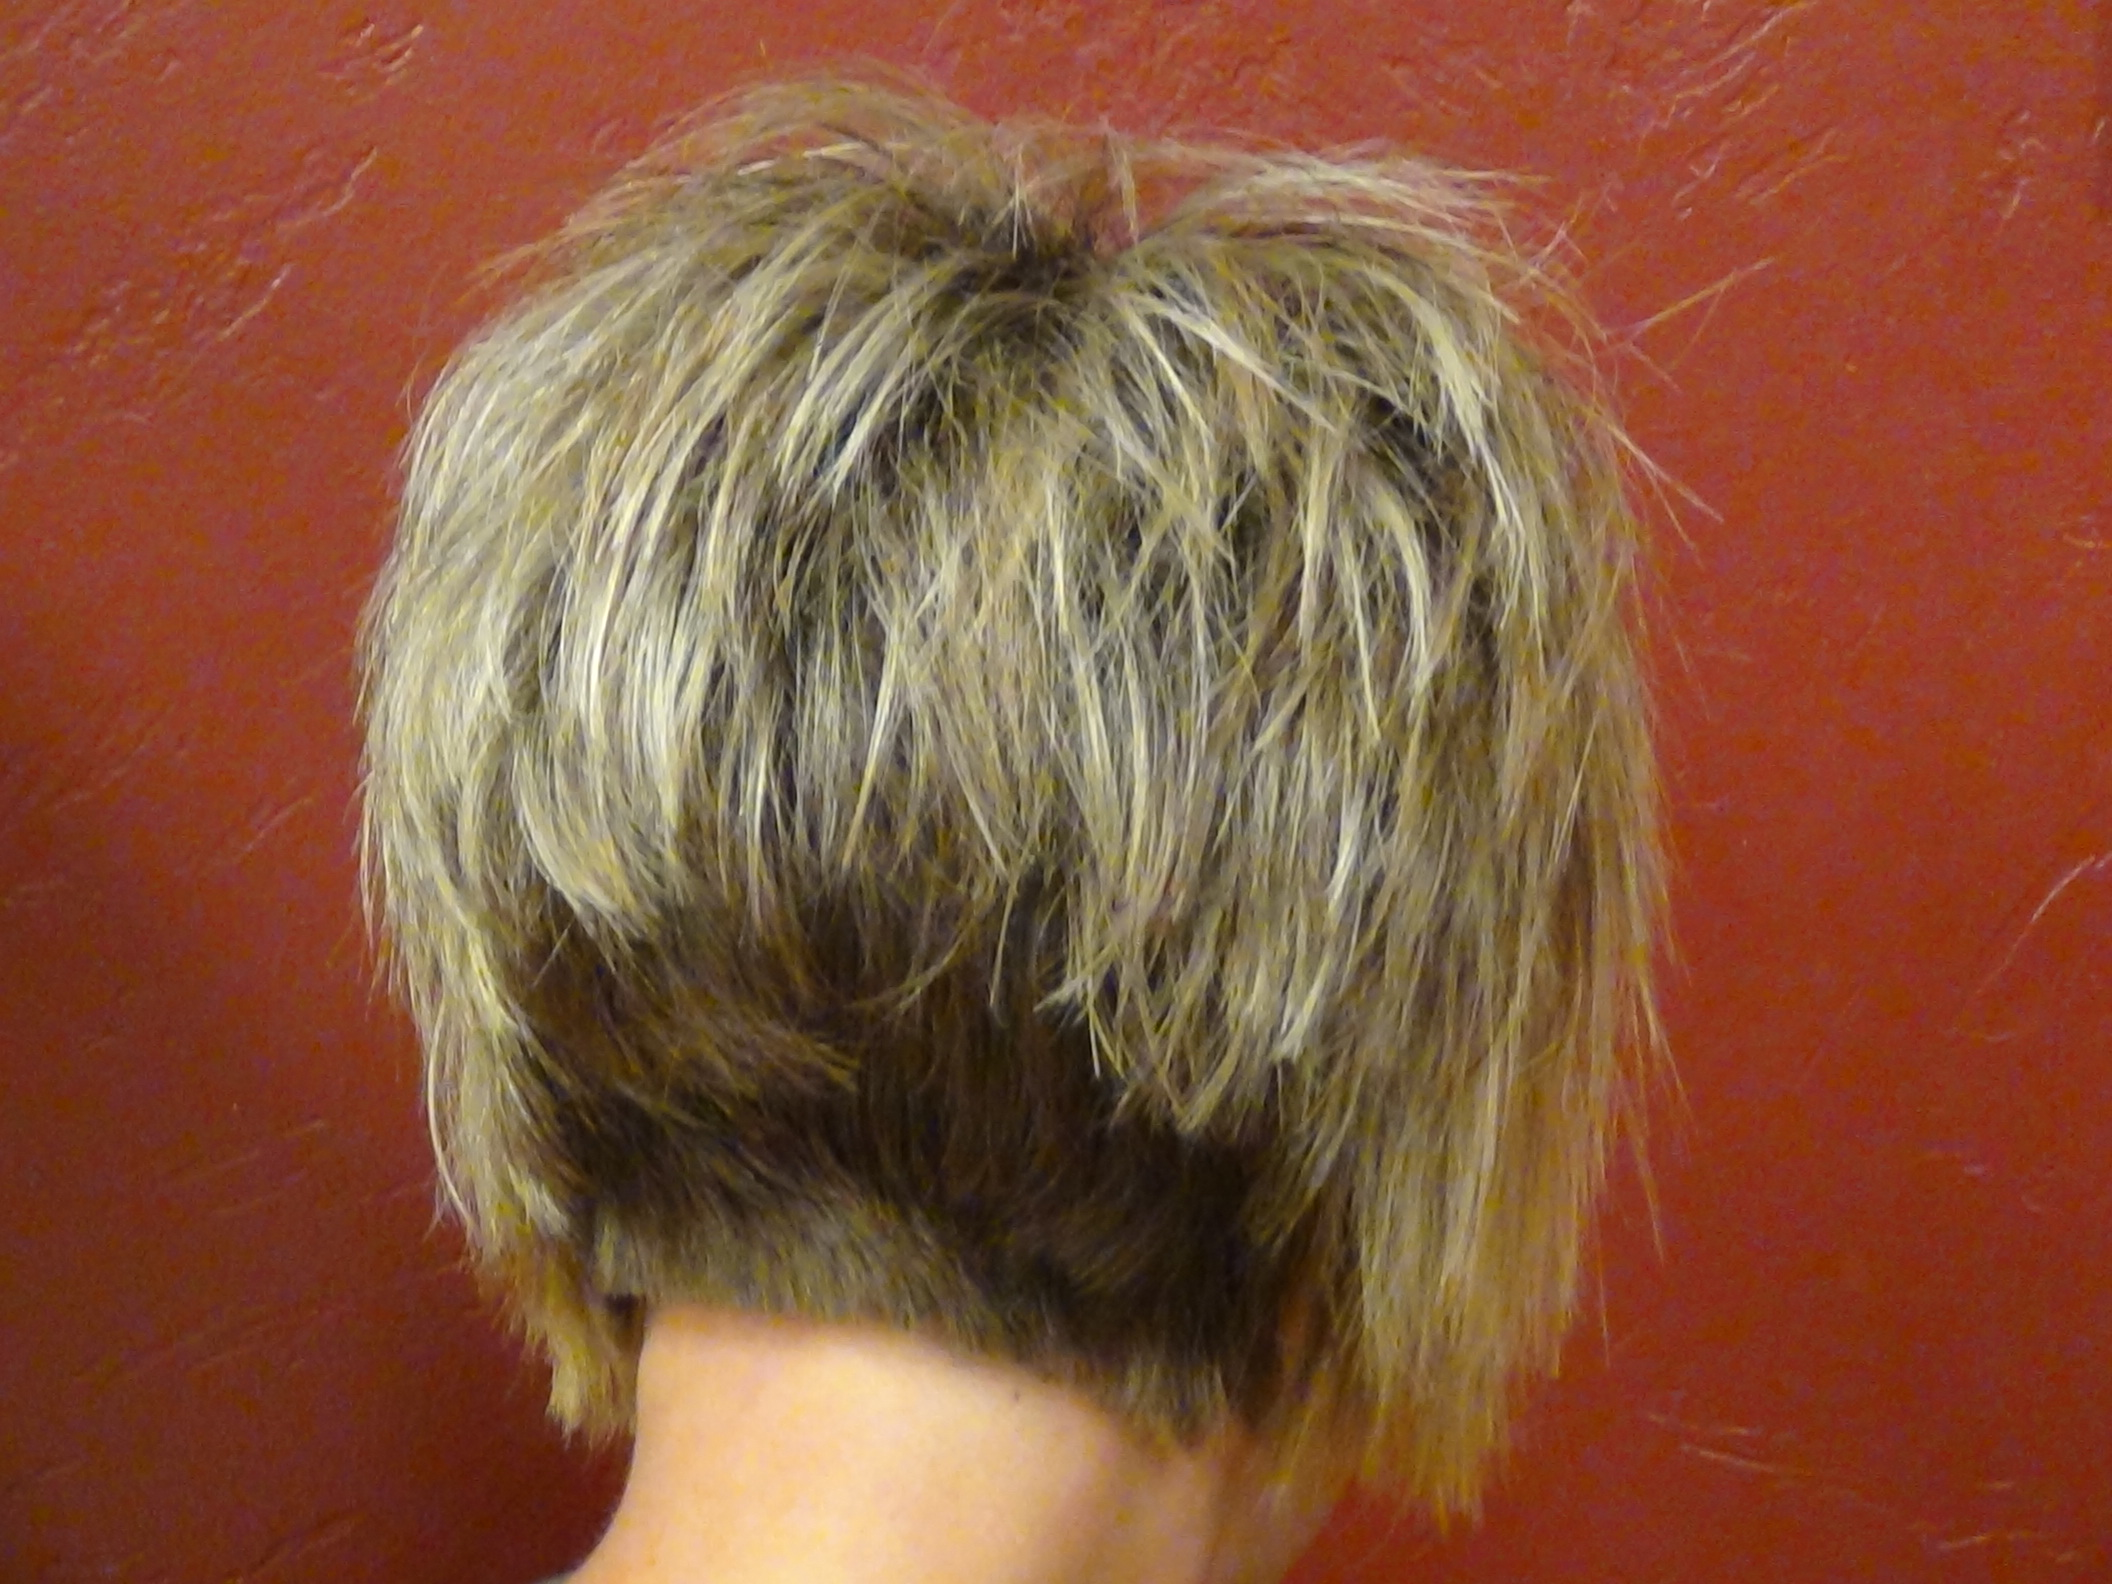 Hair Style Vedios : Short Girls Haircuts and Hairstyle Boys and Girls Hair Styles